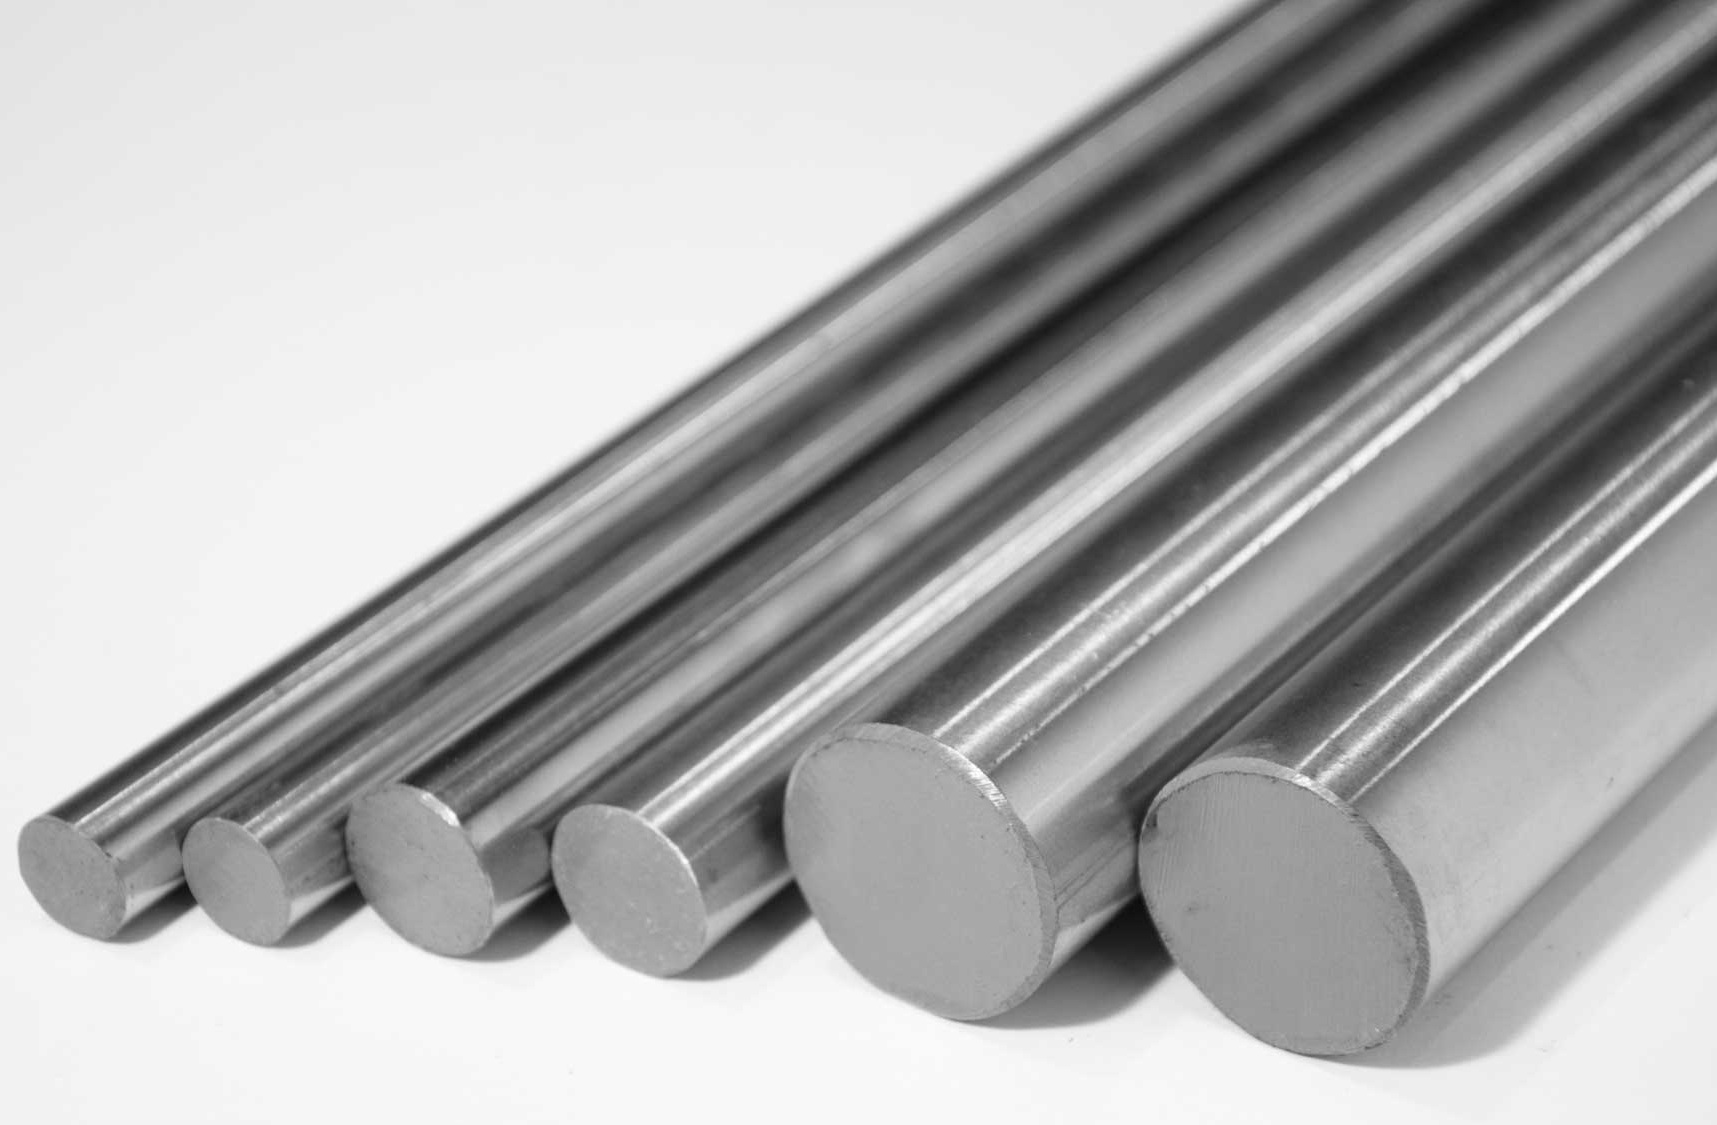 Hot Die Steel Bars